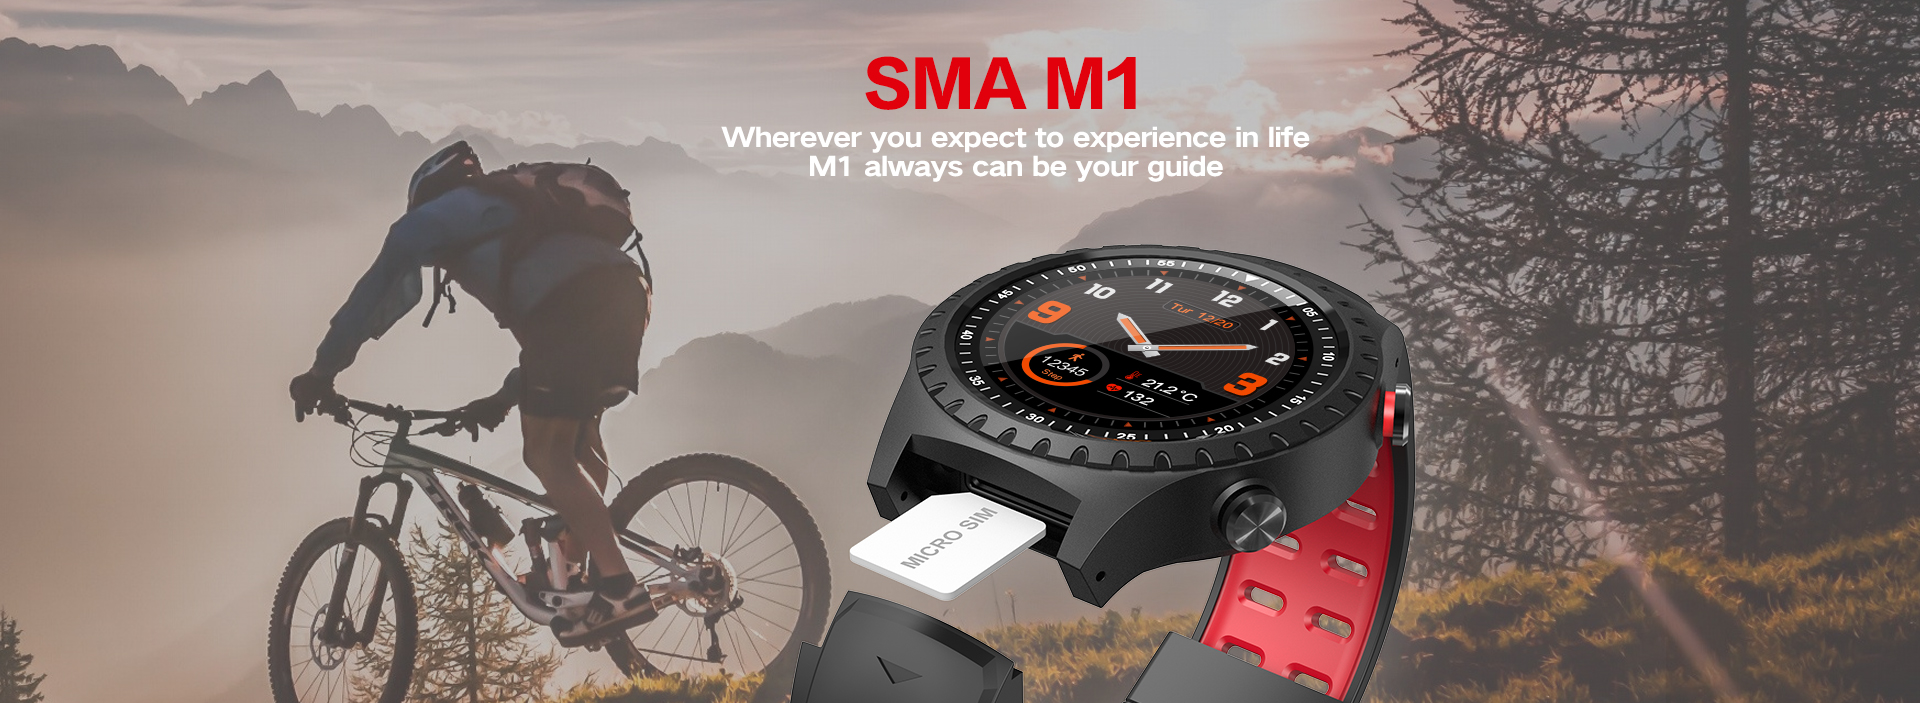 Best seller 2018 New Build-in GPS Sport Smart Watch with Compass,Barometer,Support Sim Card For IOS Android Phone ,Bluetooth 4.0